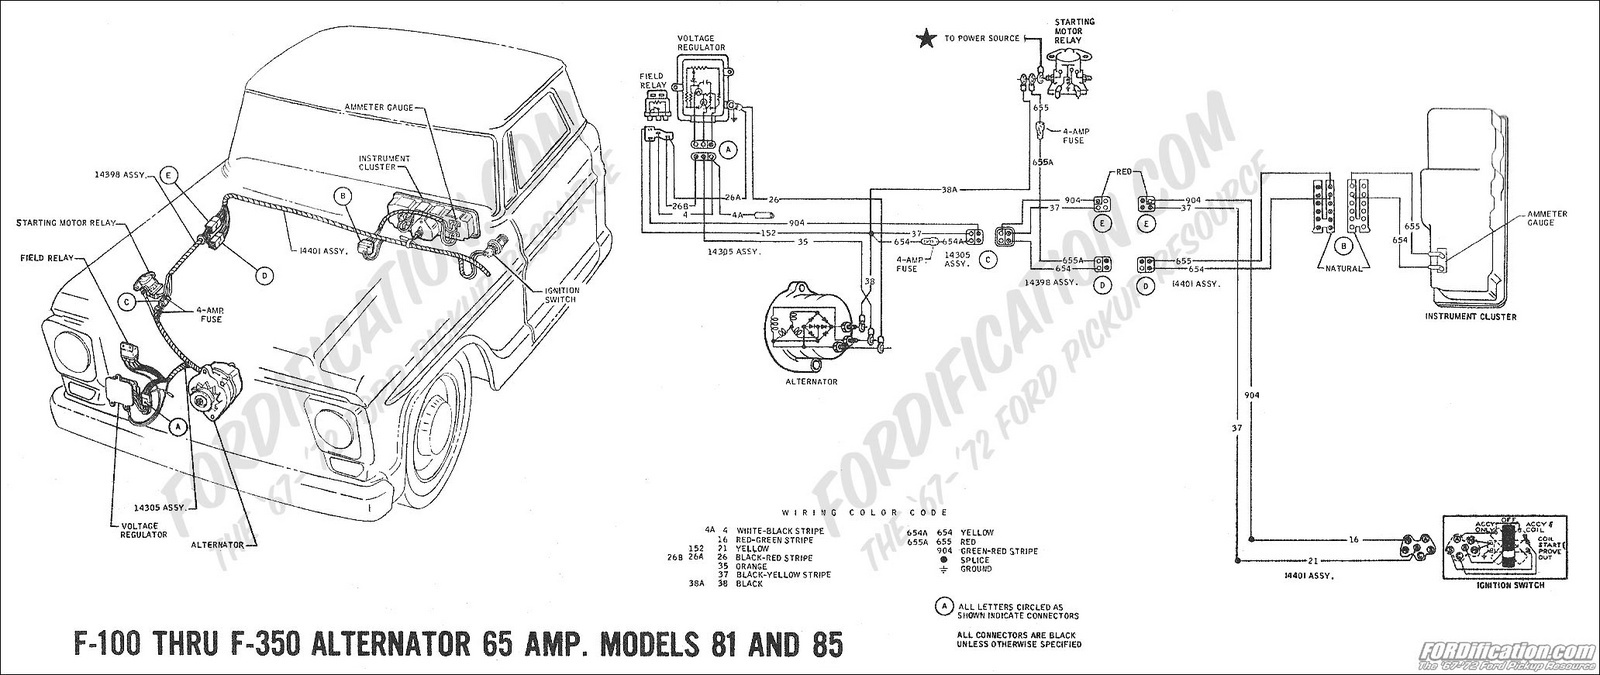 1967 f 100 wiring diagram color wiring diagram services u2022 rh zigorat co